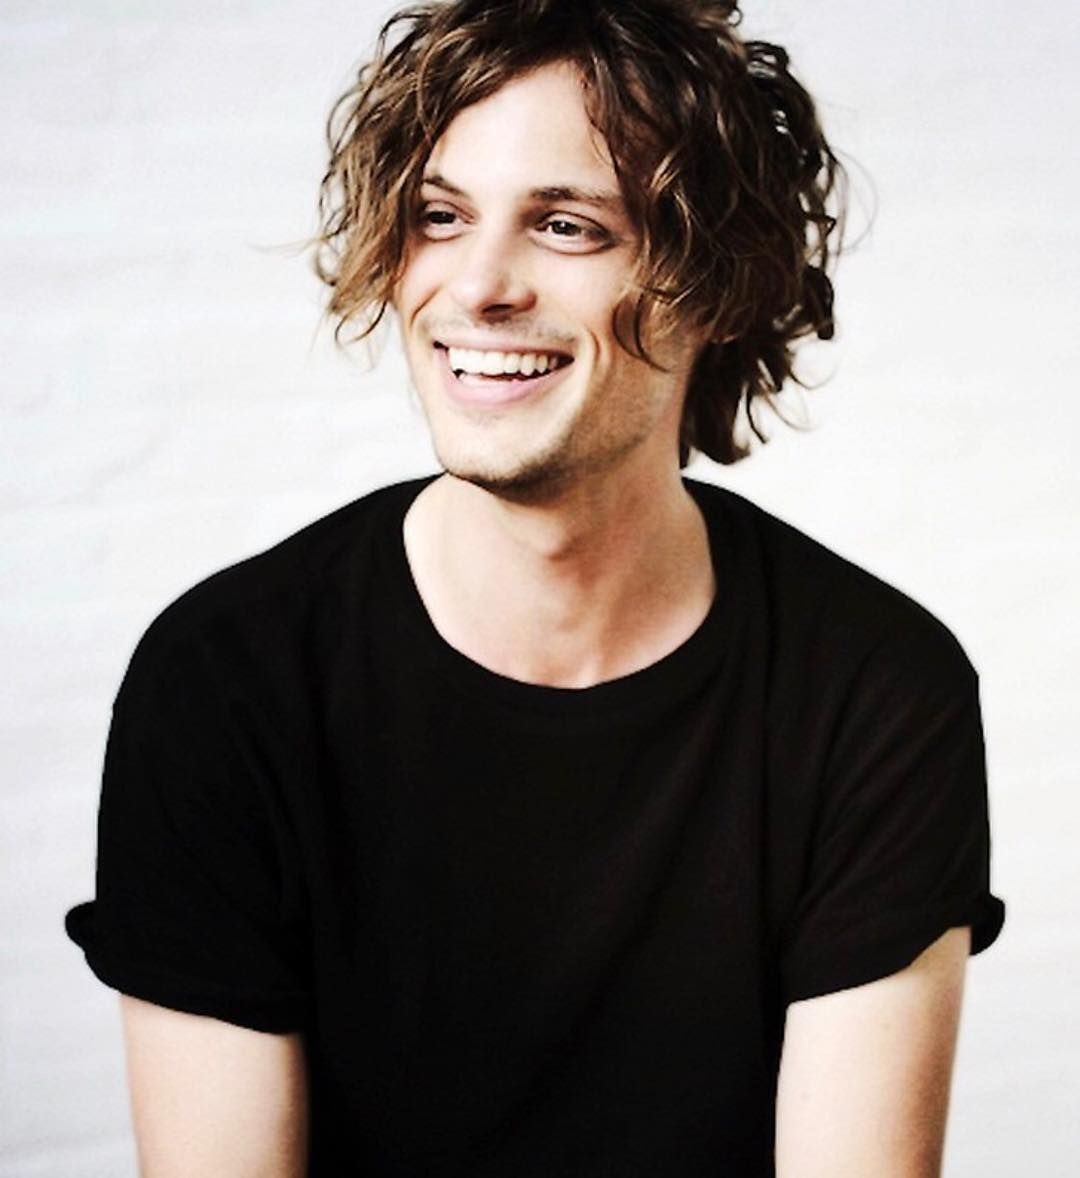 criminal minds, matthew gray gubler, and smile image